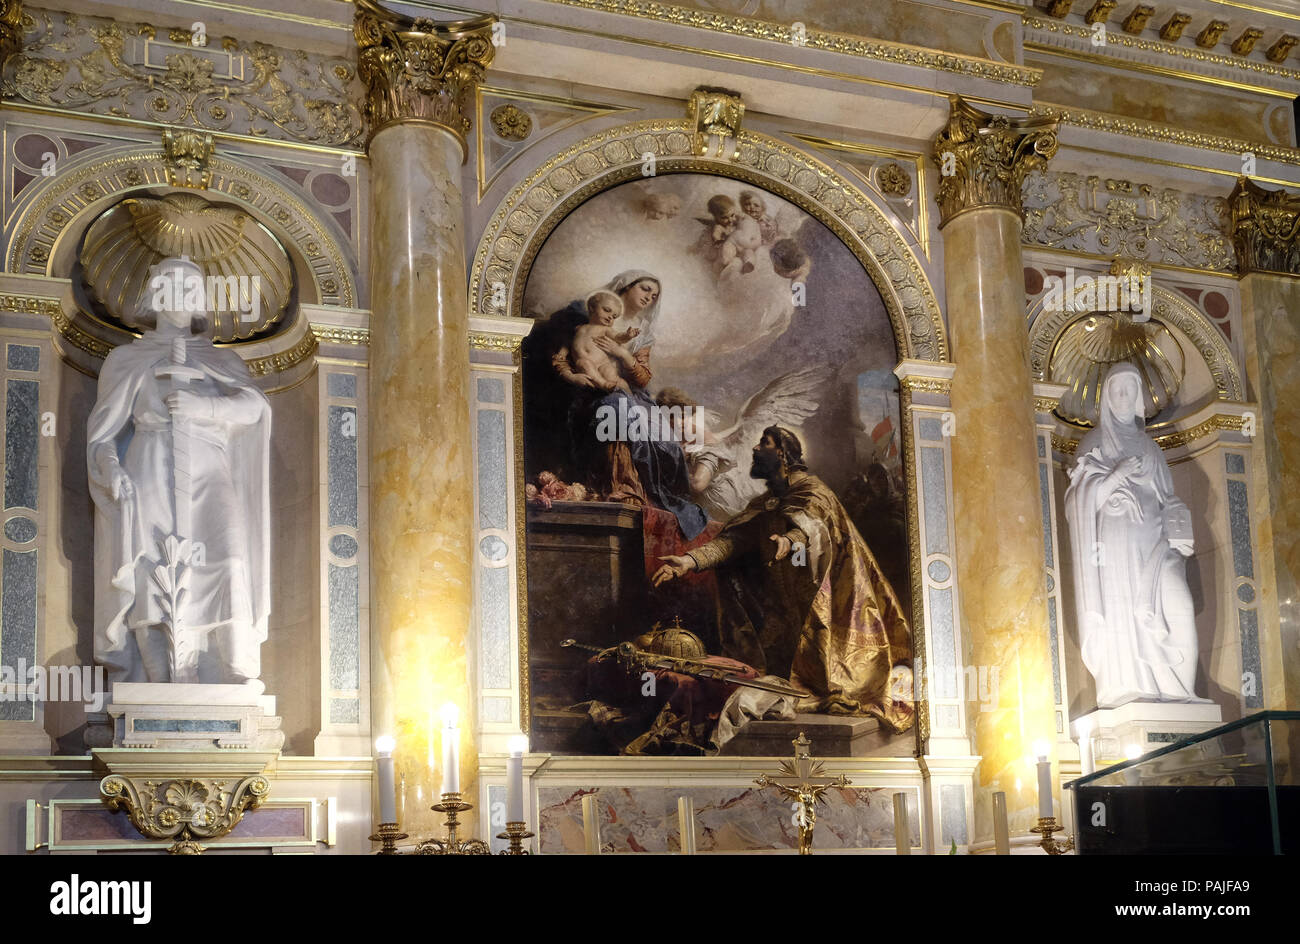 Saint Stephen offers his crown to the Virgin Mary by Gyula Benczur, altar in the St. Stephen`s Basilica in Budapest, Hungary Stock Photo